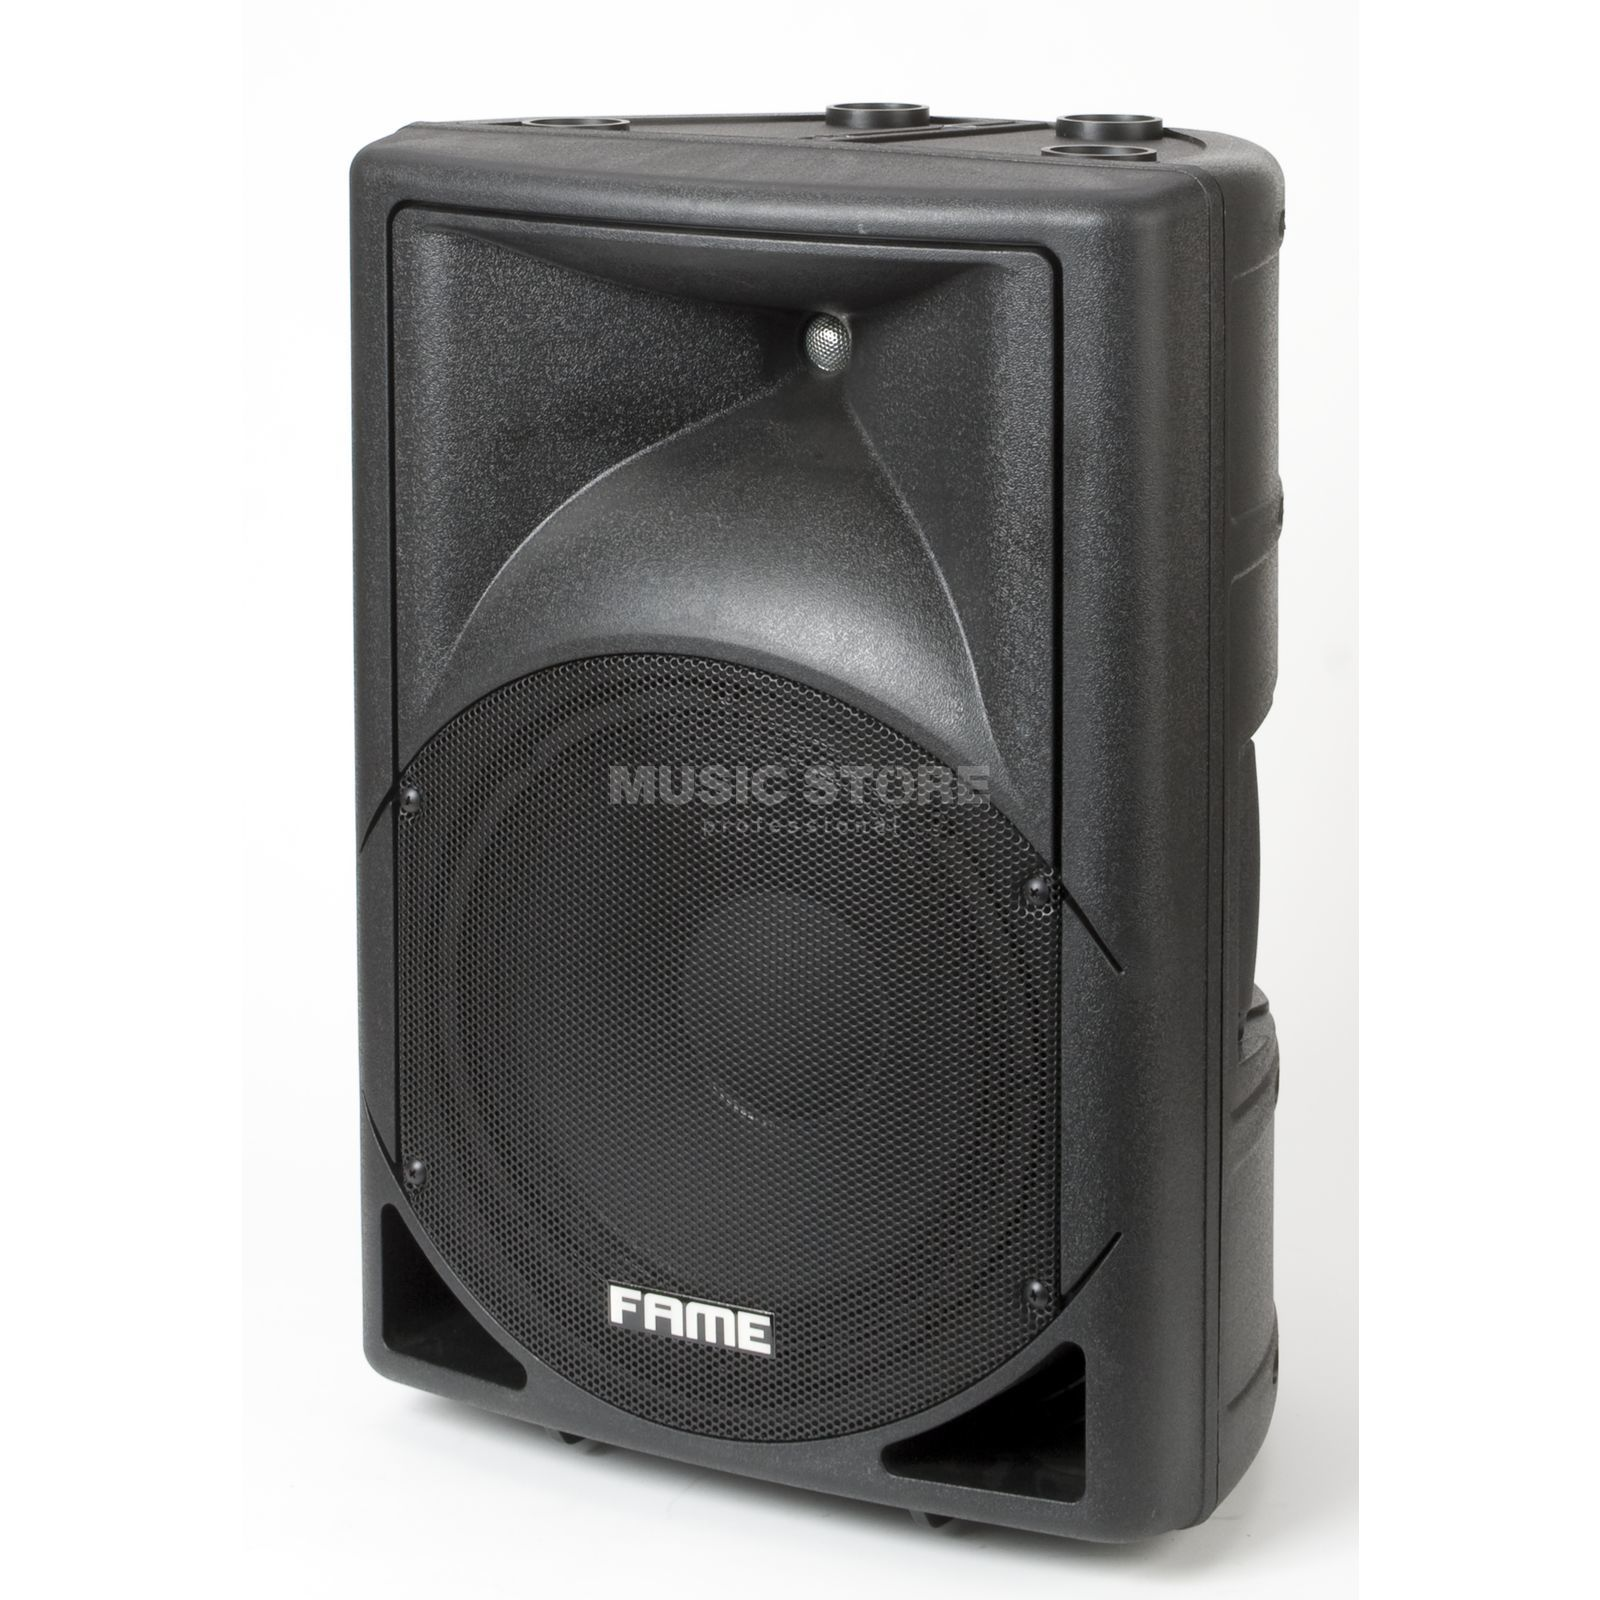 Fame PS-12 MKII 250 Watt rms, 8 Ohm Productafbeelding